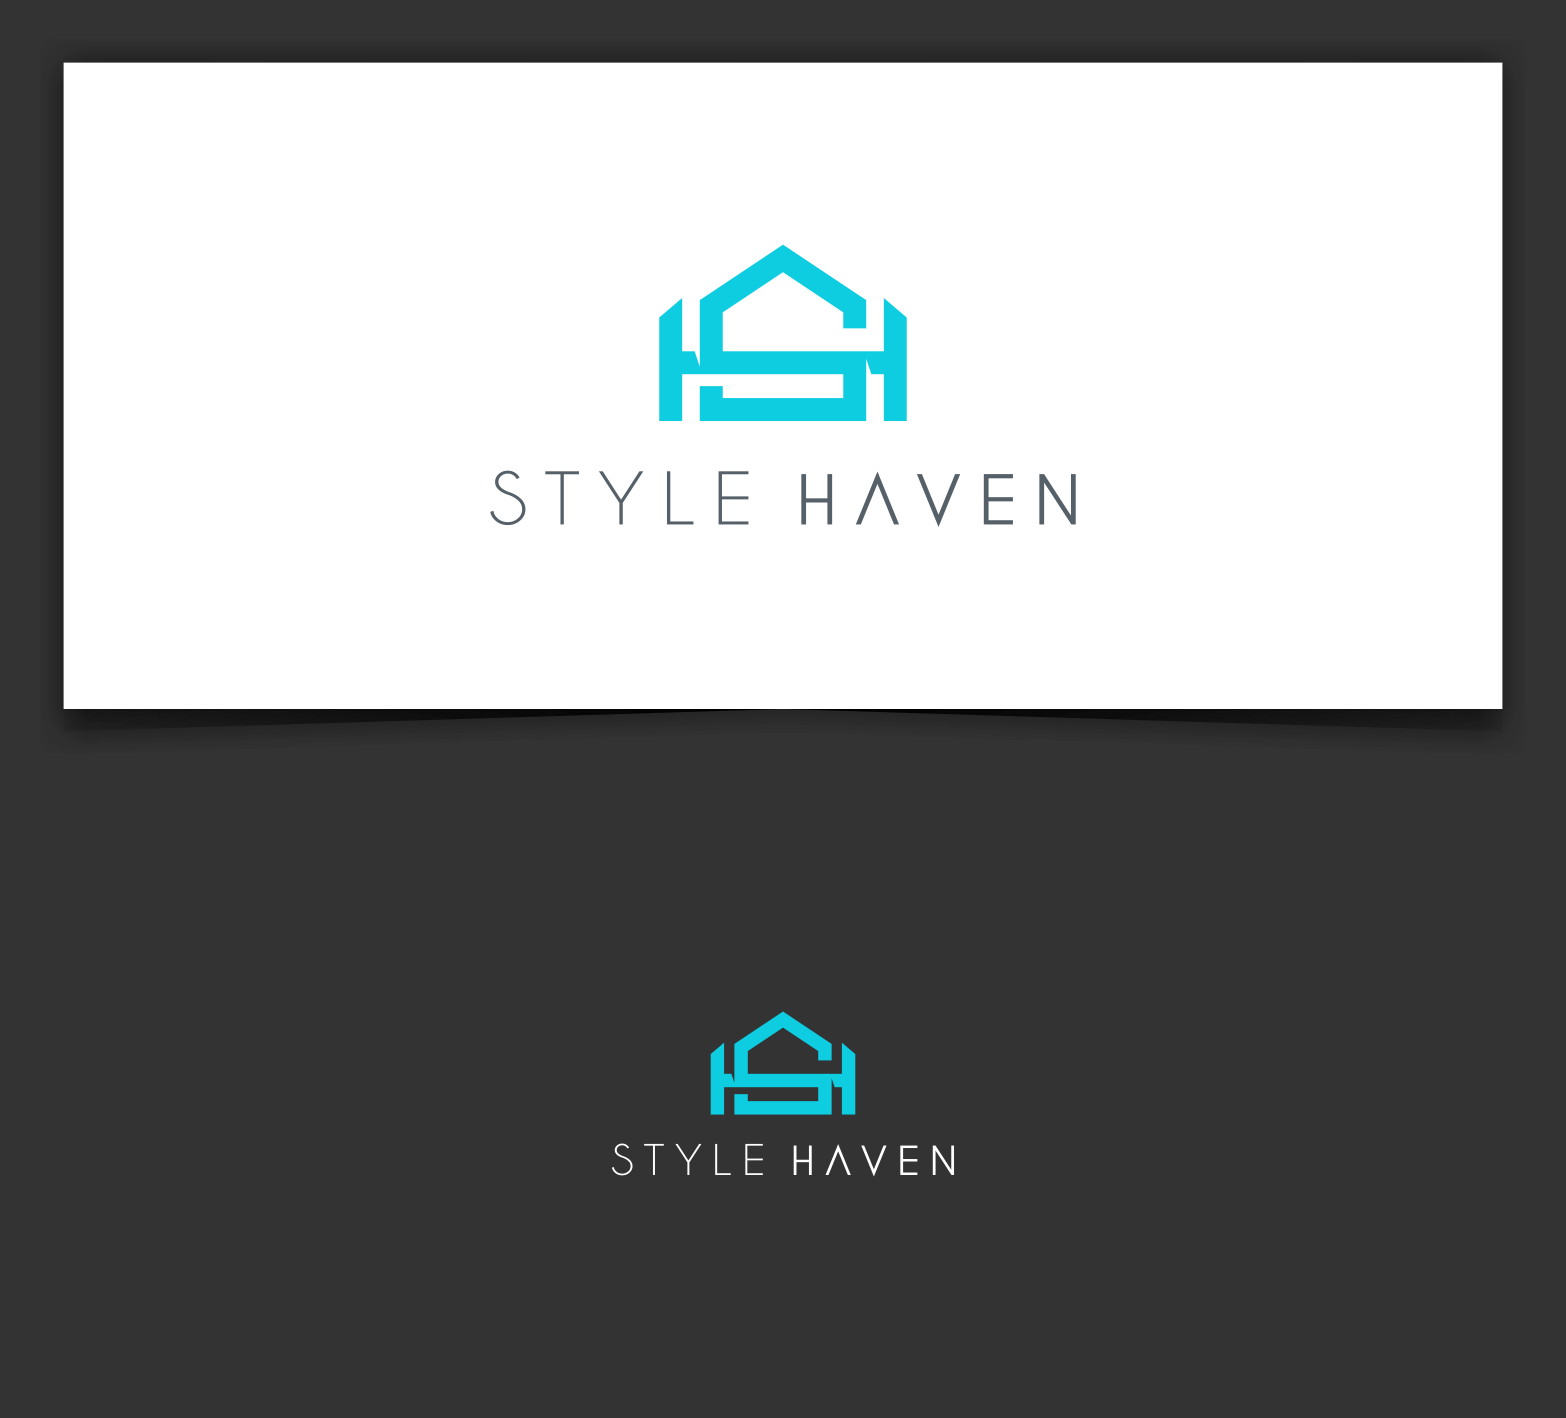 New logo wanted for Style Haven